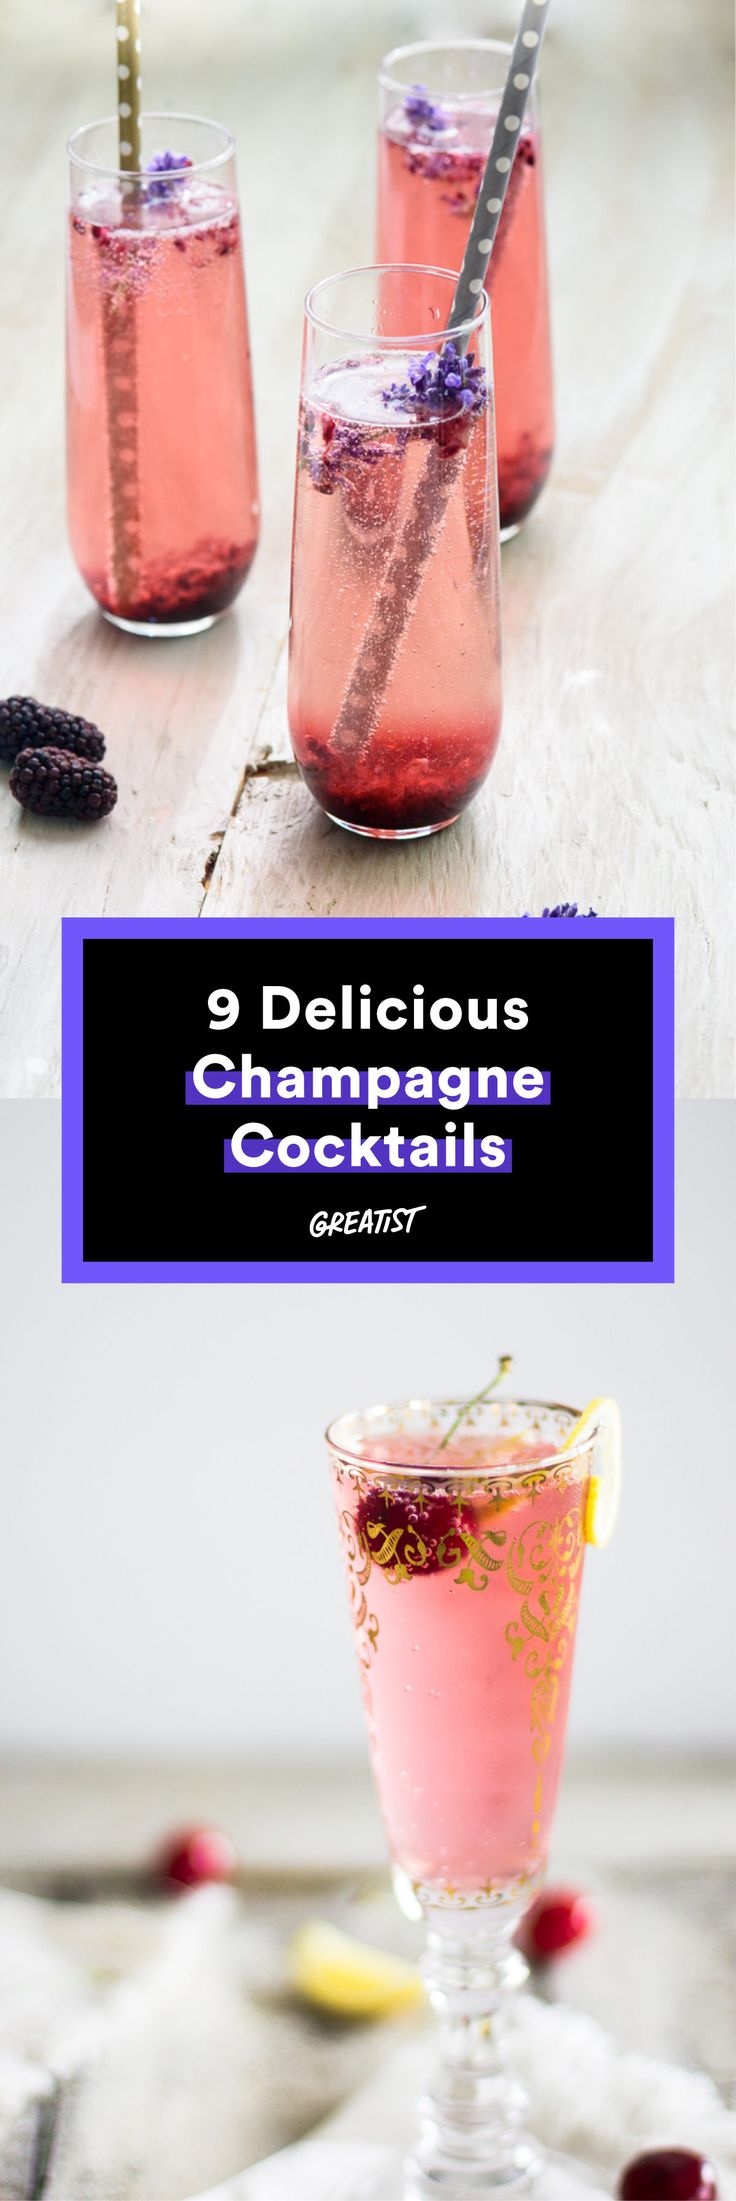 Life's too short to only drink champagne on New Year's. Get popping. #Greatist http://greatist.com/eat/festive-champagne-cocktail-recipes